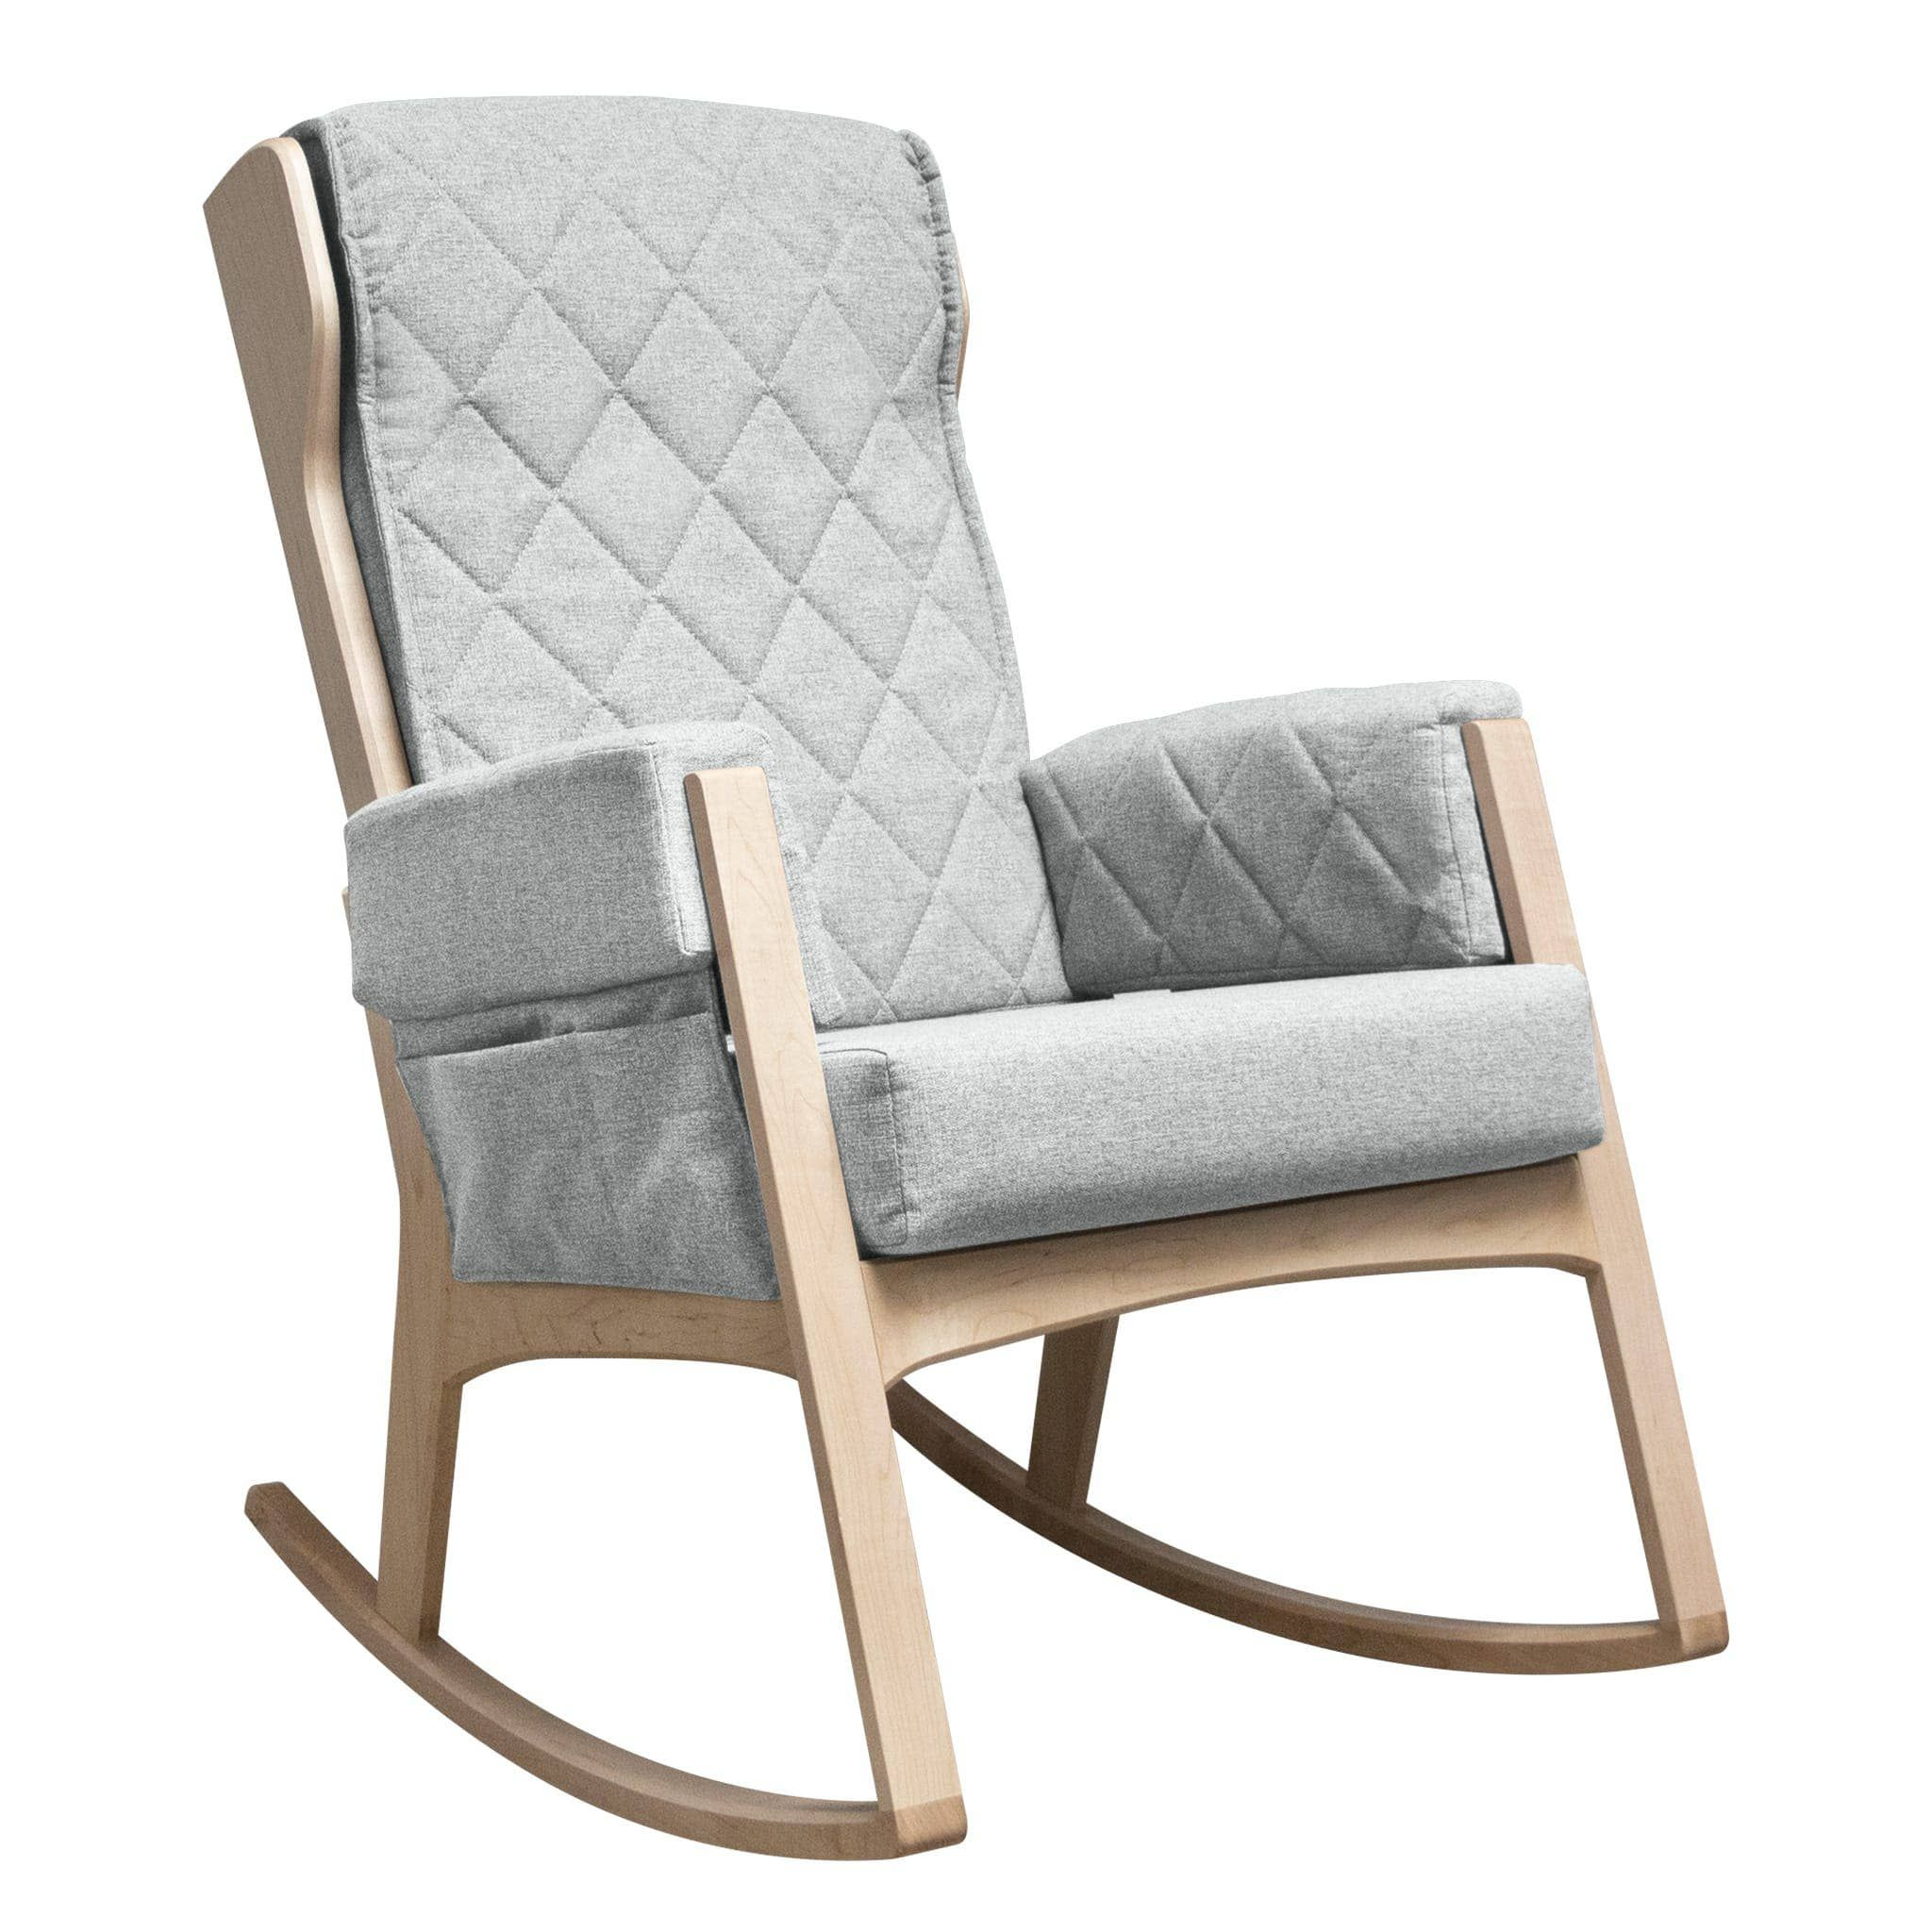 Chaise Bercante Bois Naturel Et Tissu Gris 5309 Dutailier Clement Rocking Chair Chair Cushions